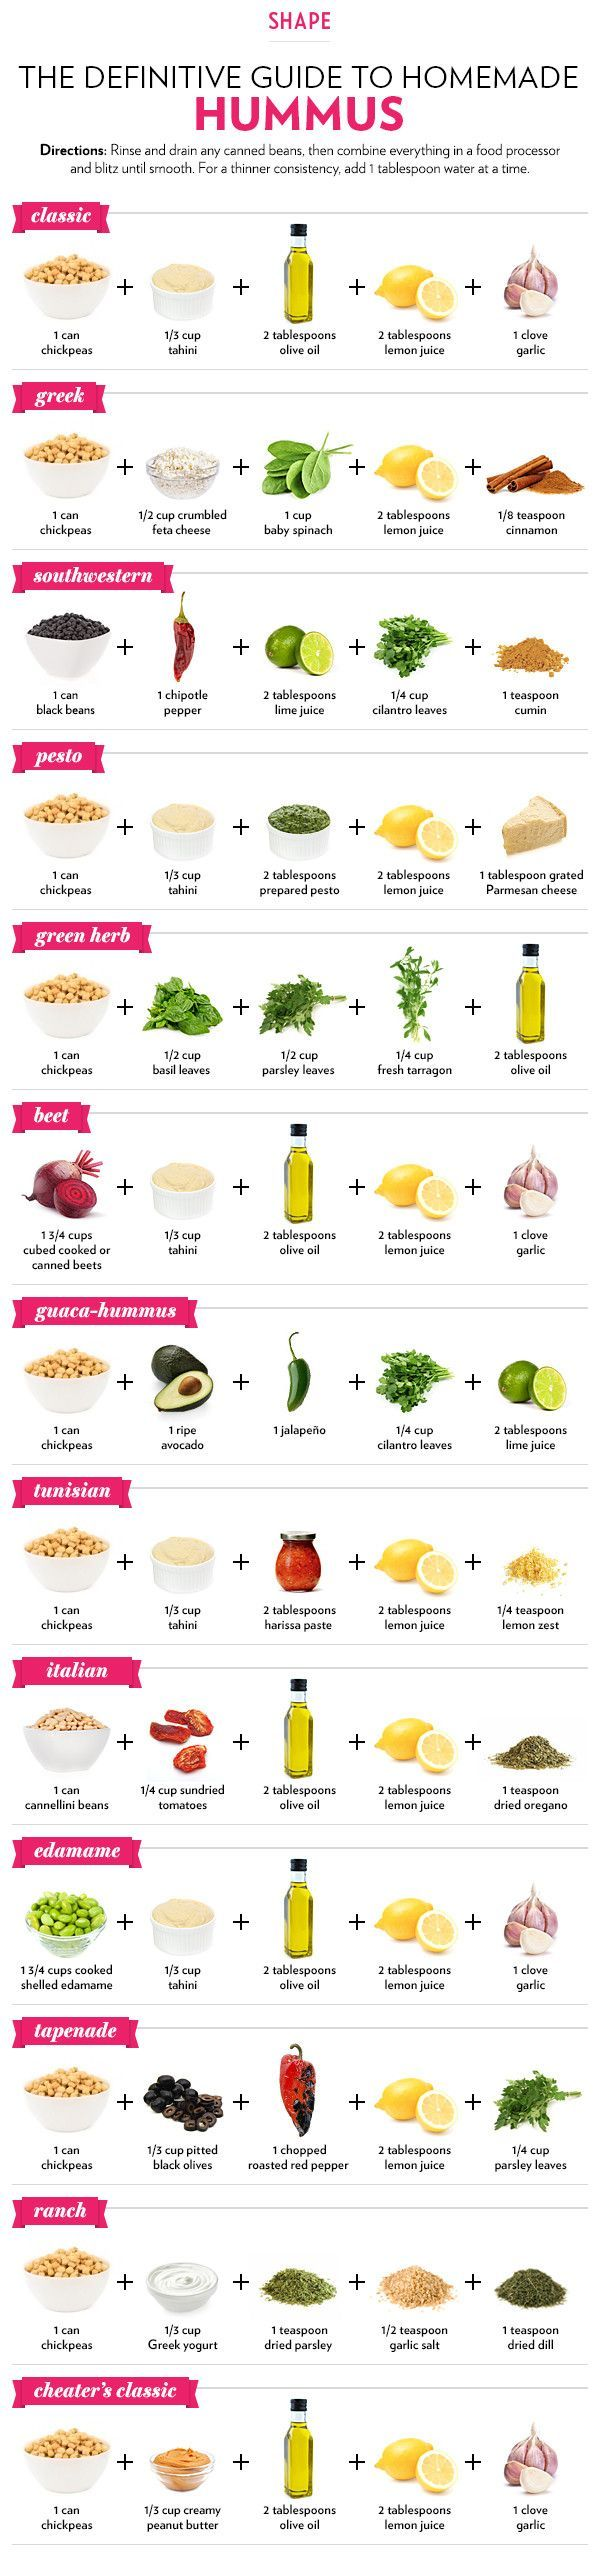 Hummus made easy, multiple recipes.